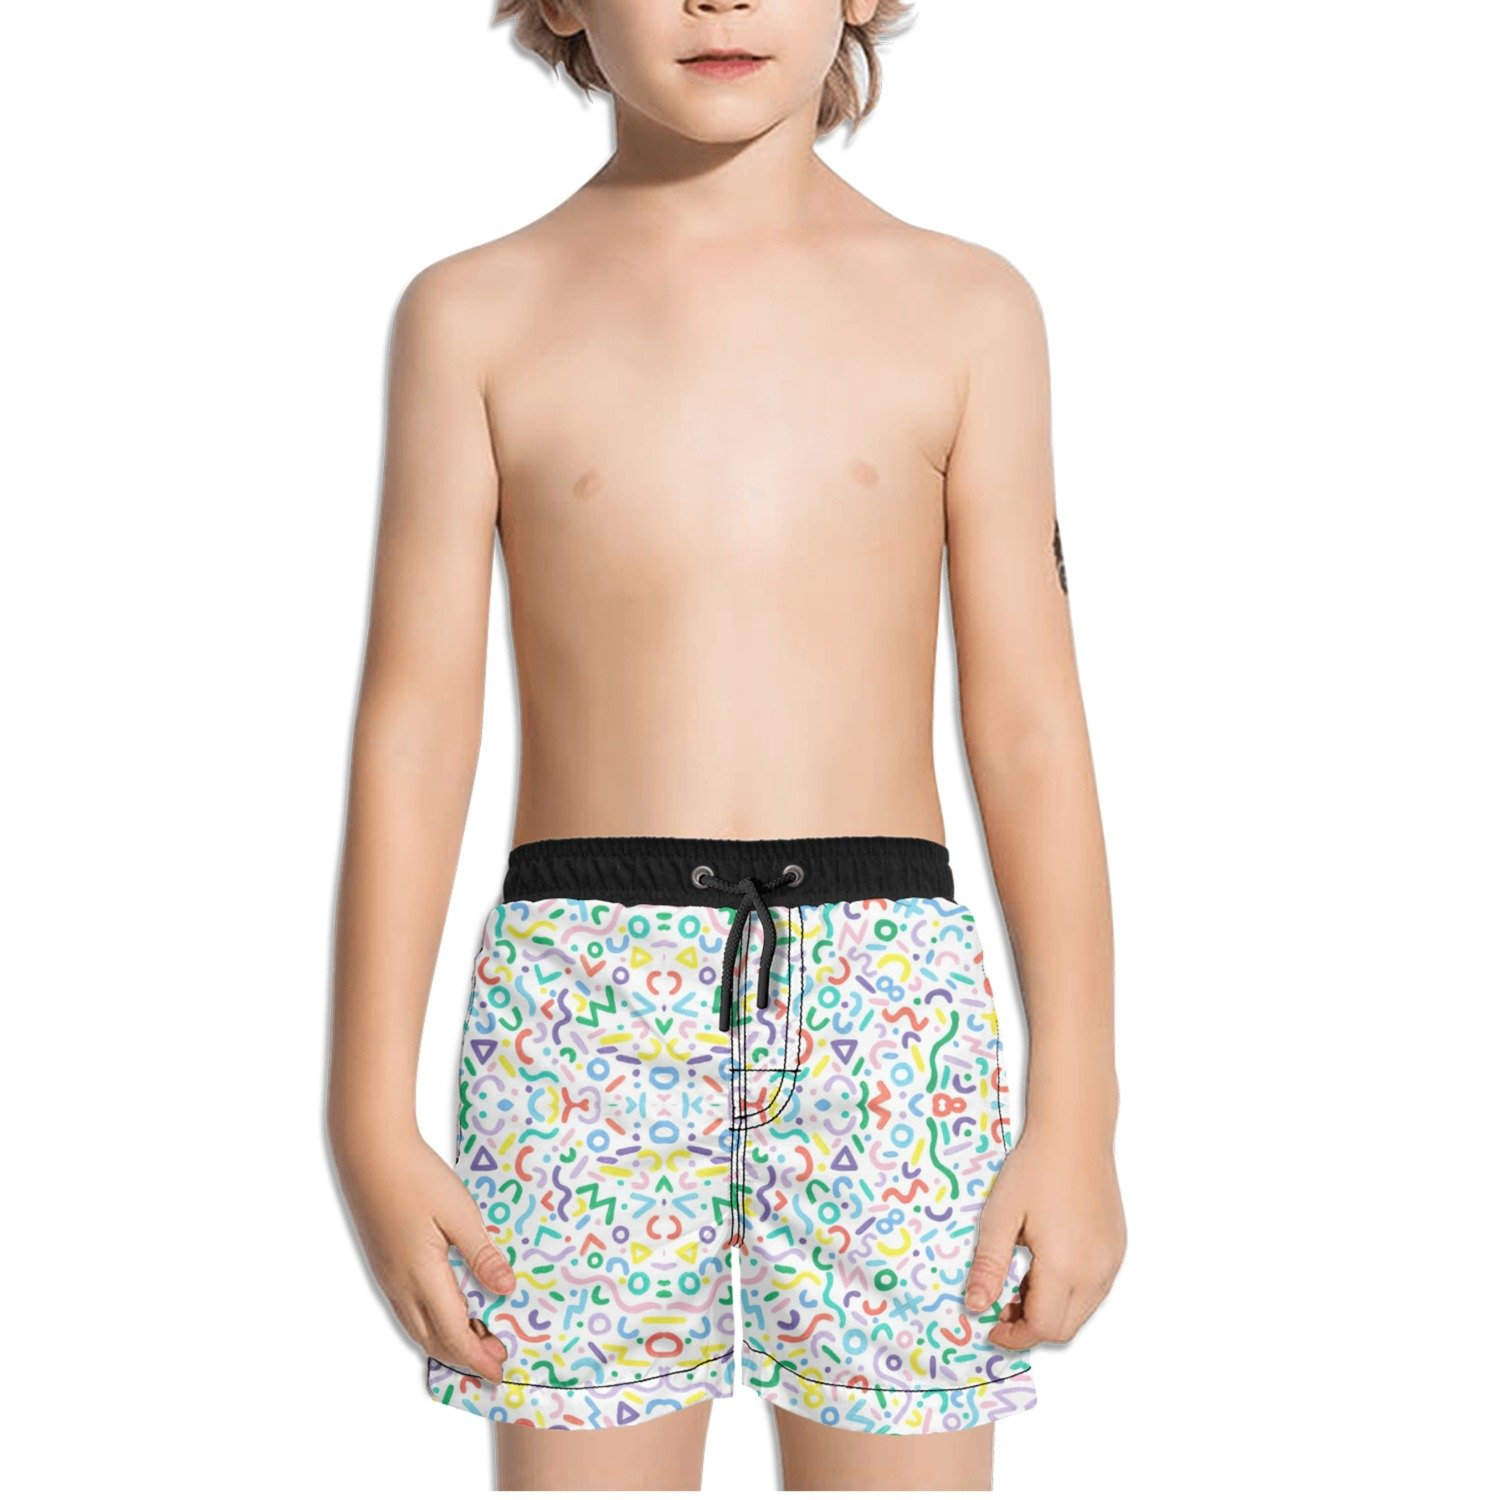 Ouxioaz Boys Swim Trunk Colorful Design Abstract Beach Board Shorts